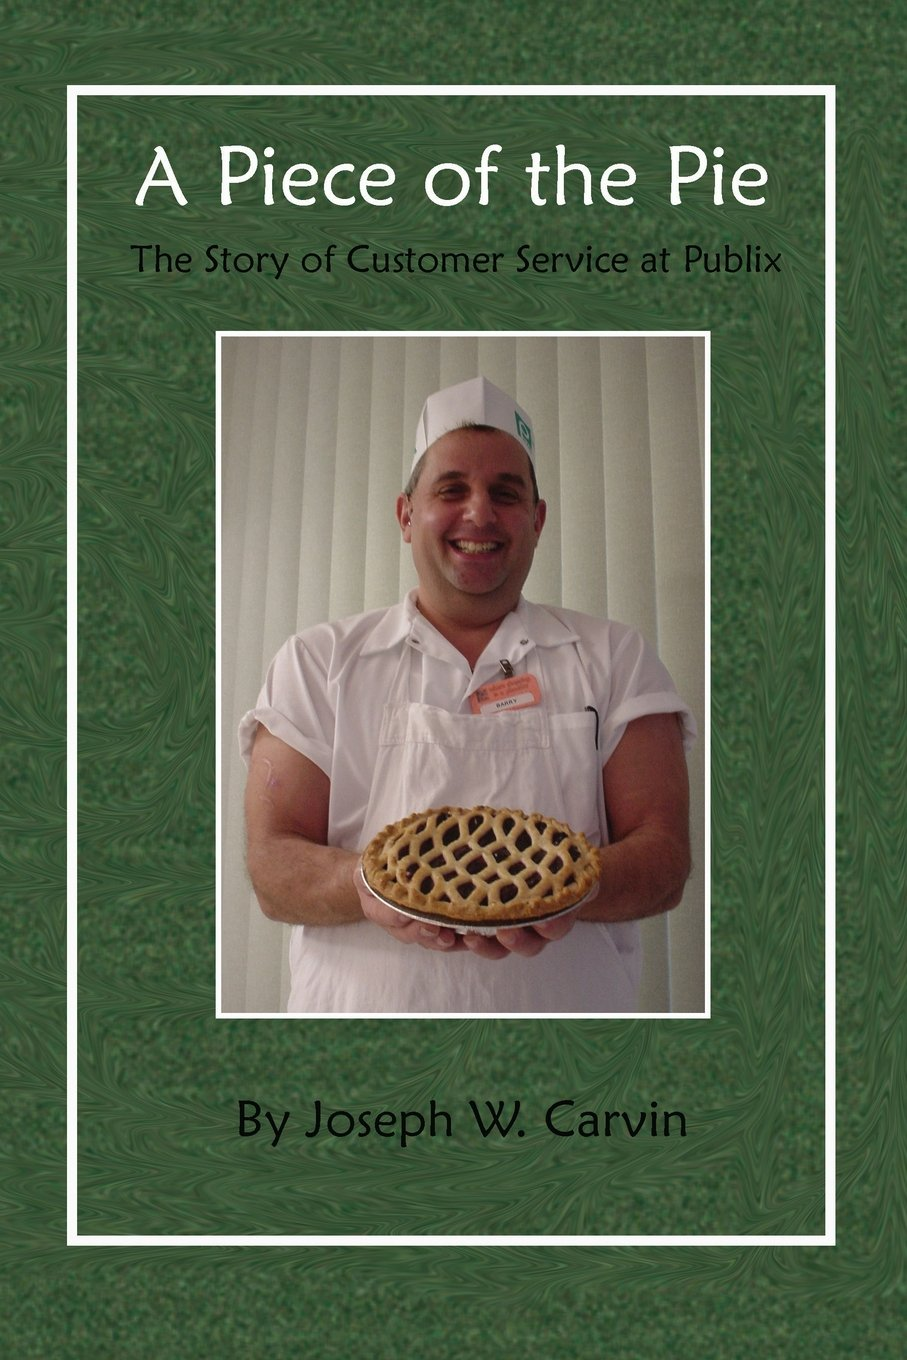 A Piece of the Pie: The Story of Customer Service at Publix